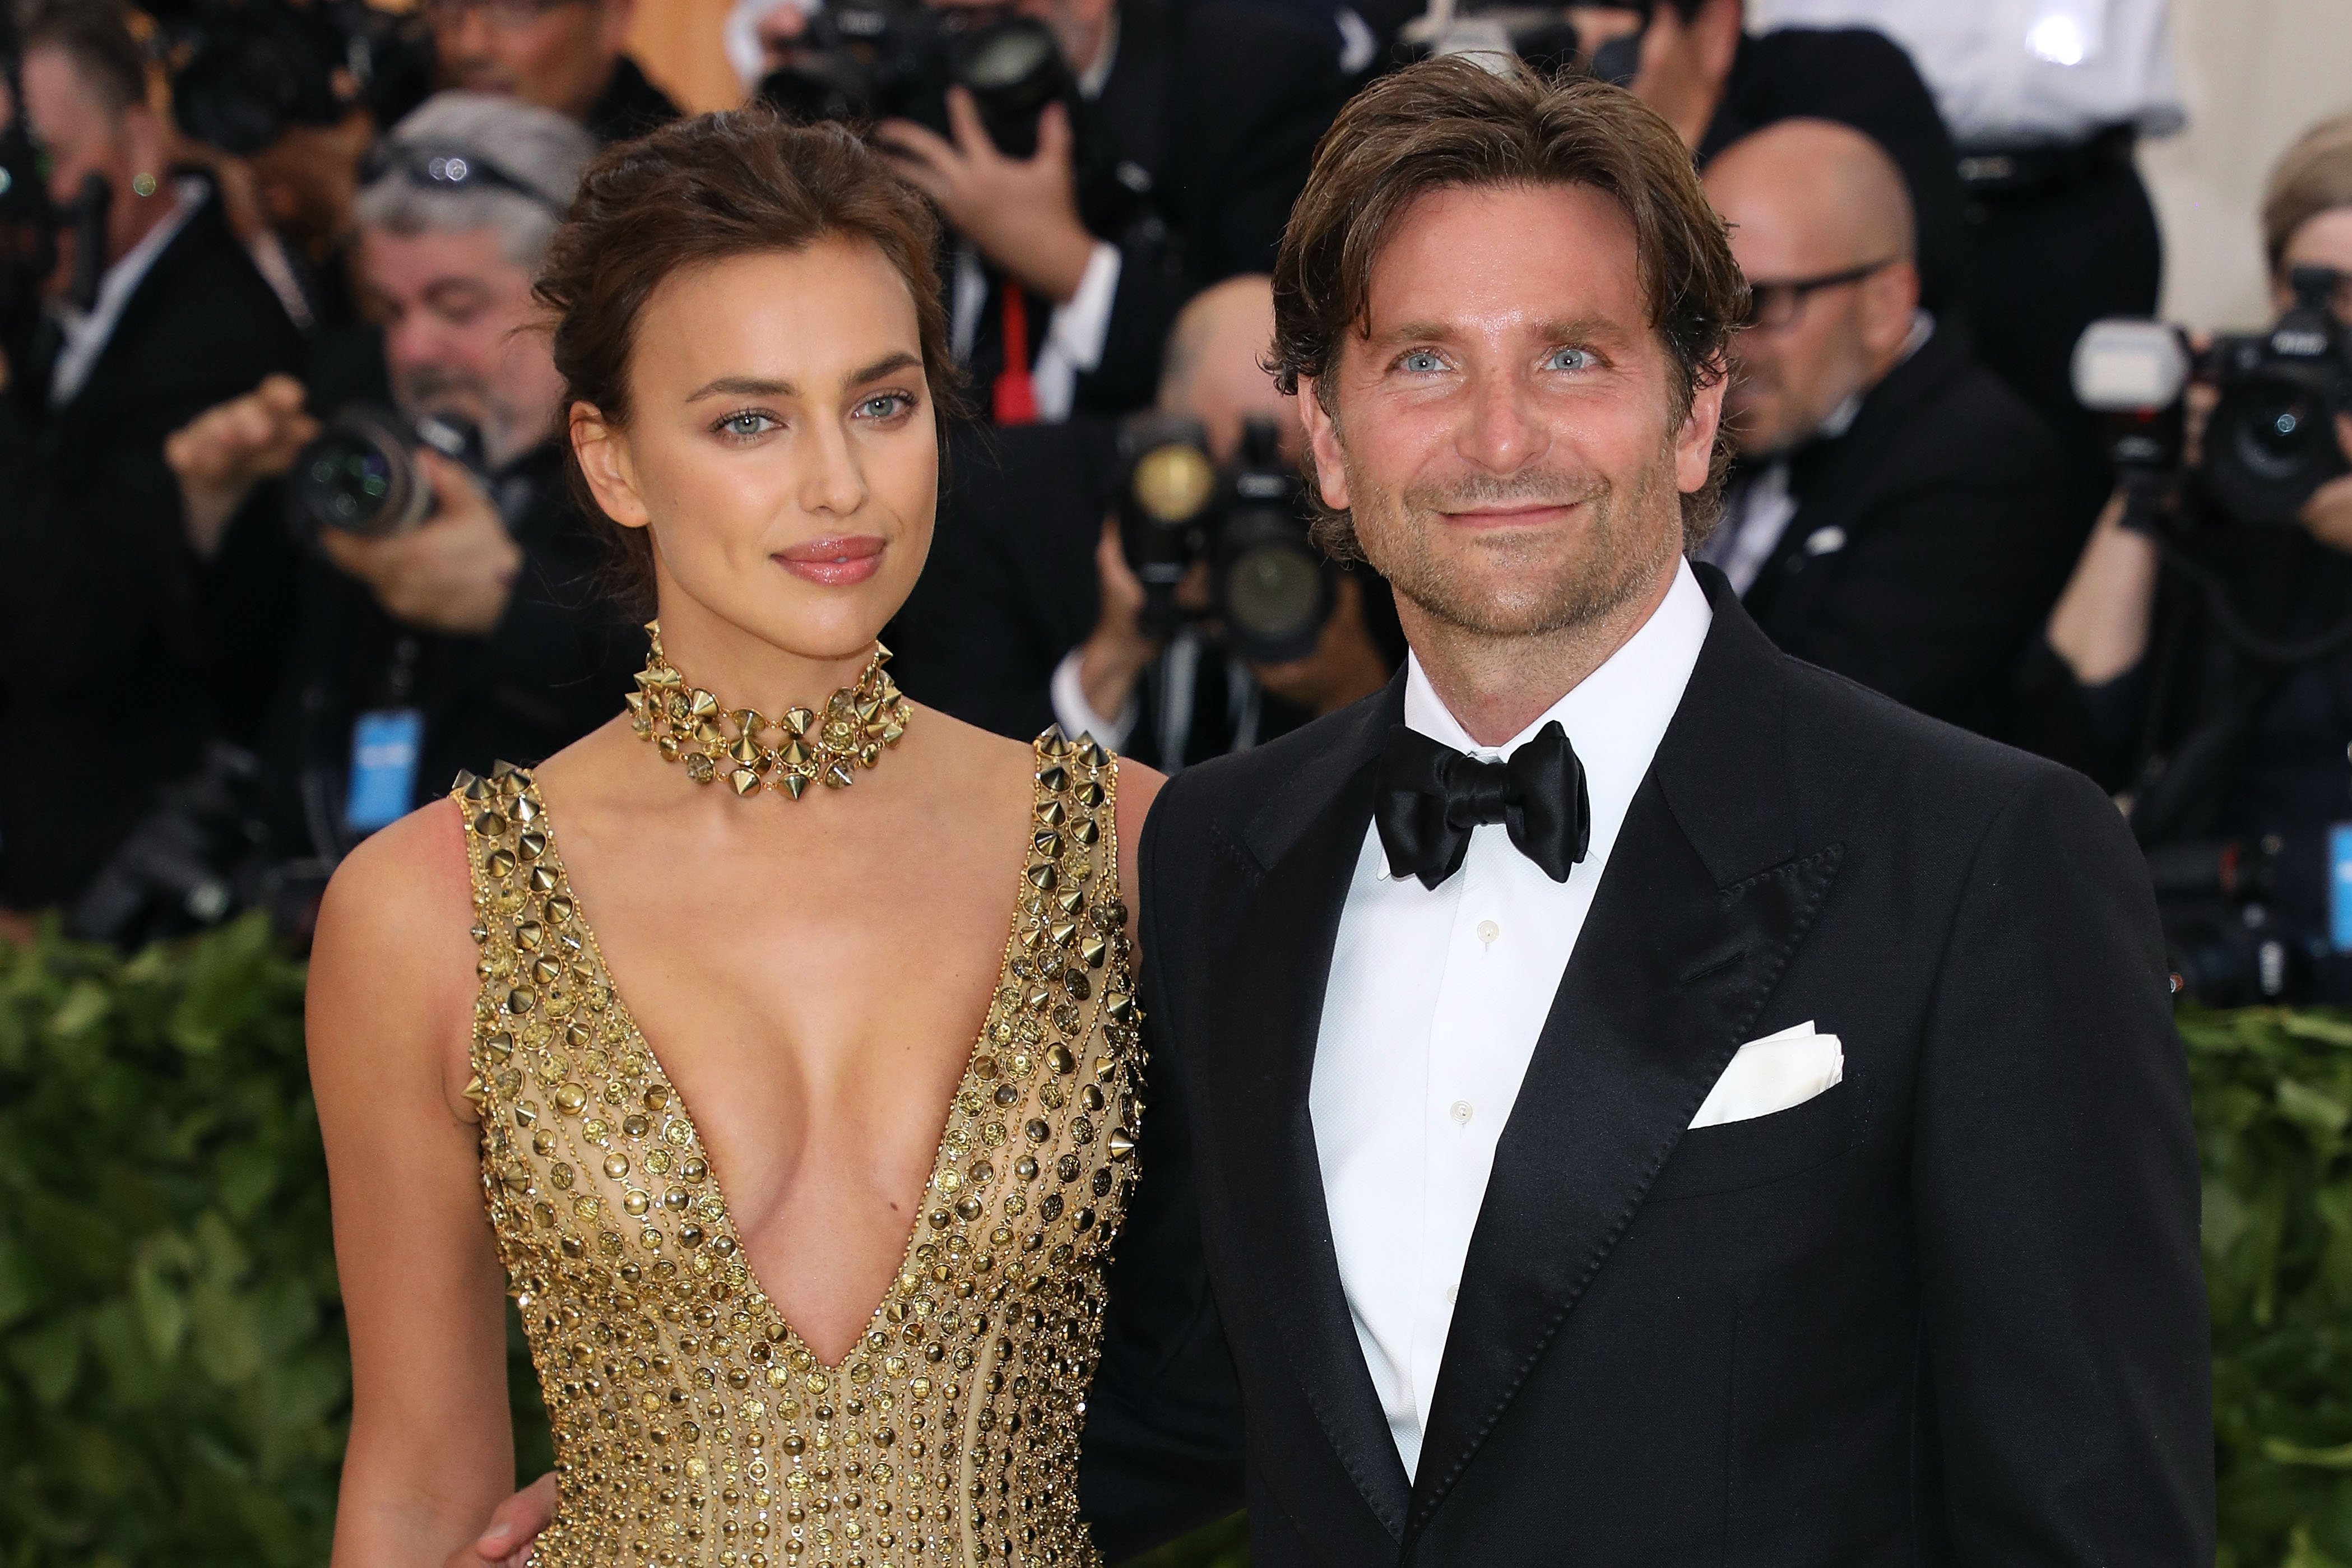 Irina Shayk and Bradley Cooper on May 7, 2018 in New York City | Source: Getty Images